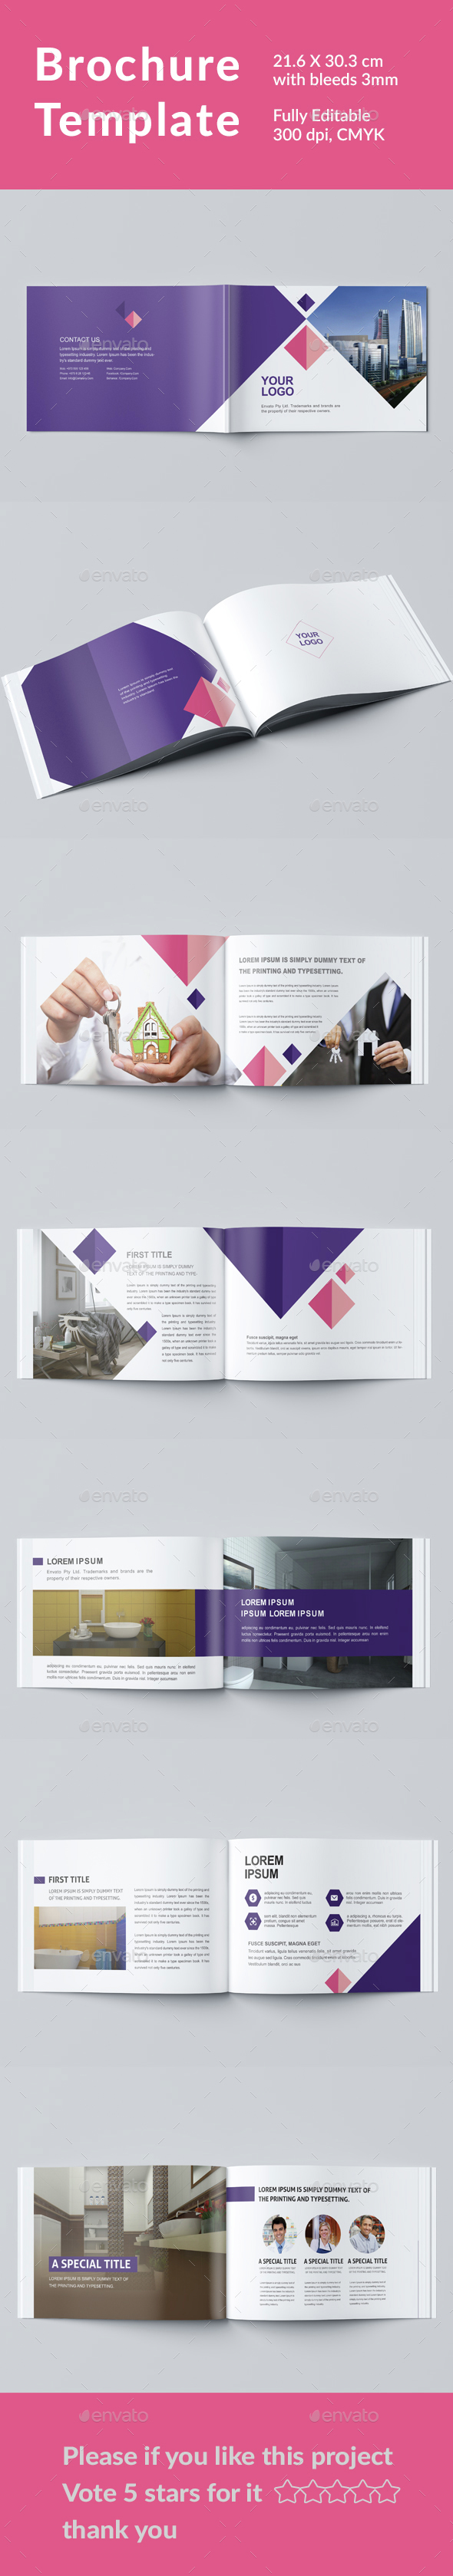 Brochure Template - Magazines Print Templates